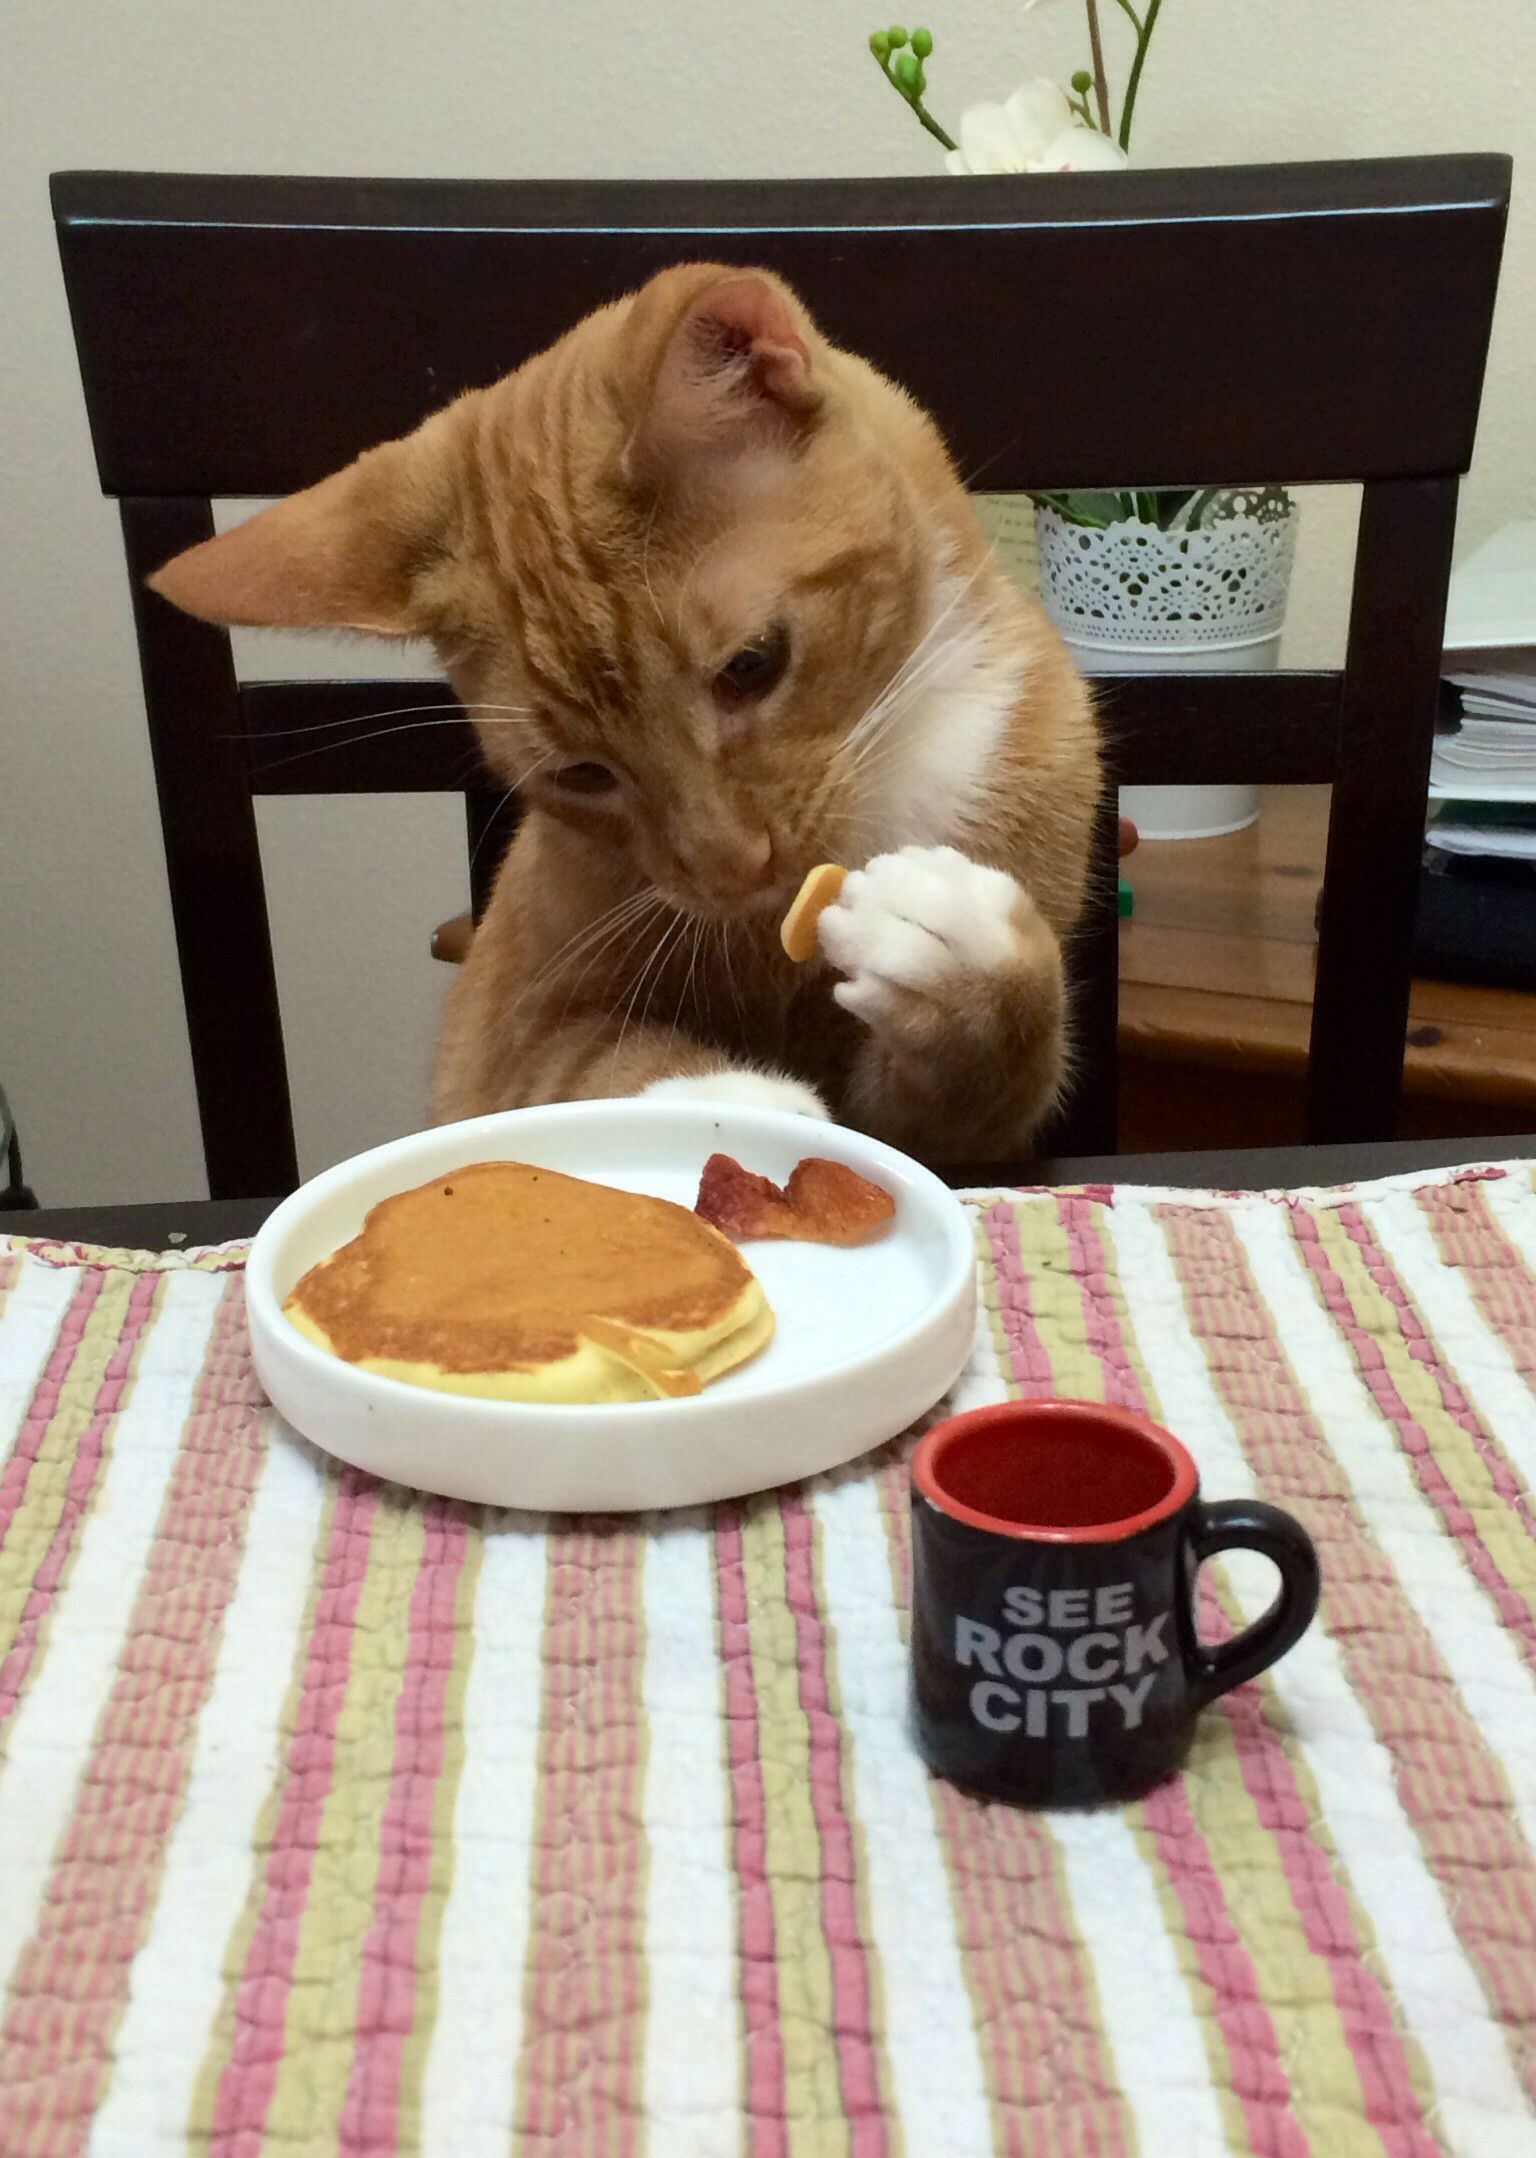 Cats eating dinner at the table cats funny animal